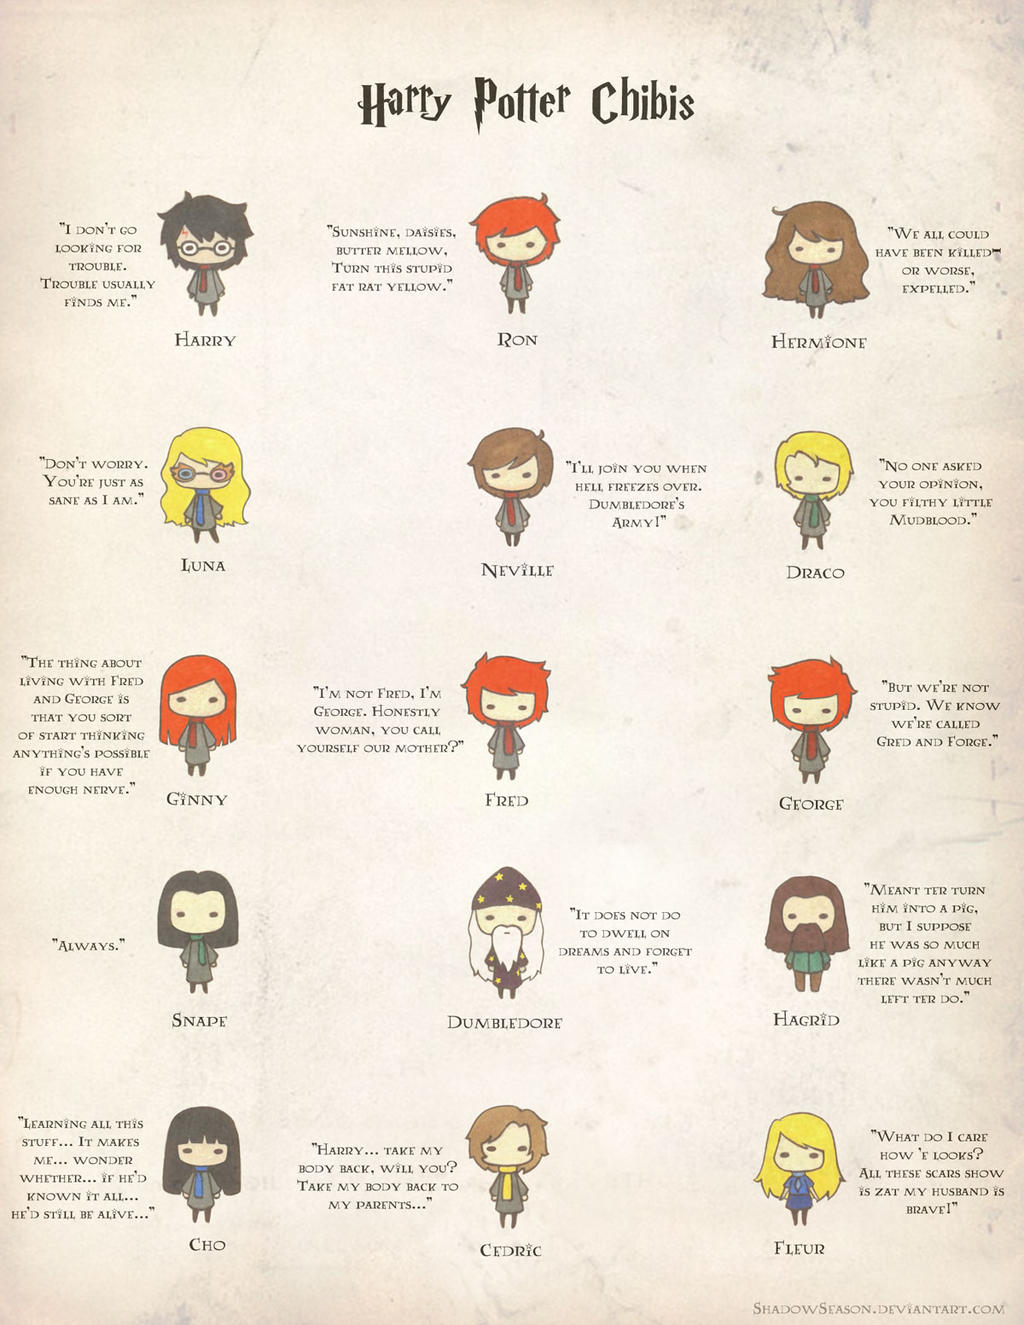 Harry Potter Book Quotes Harry Potter Chibis  Quotesshadowseason On Deviantart